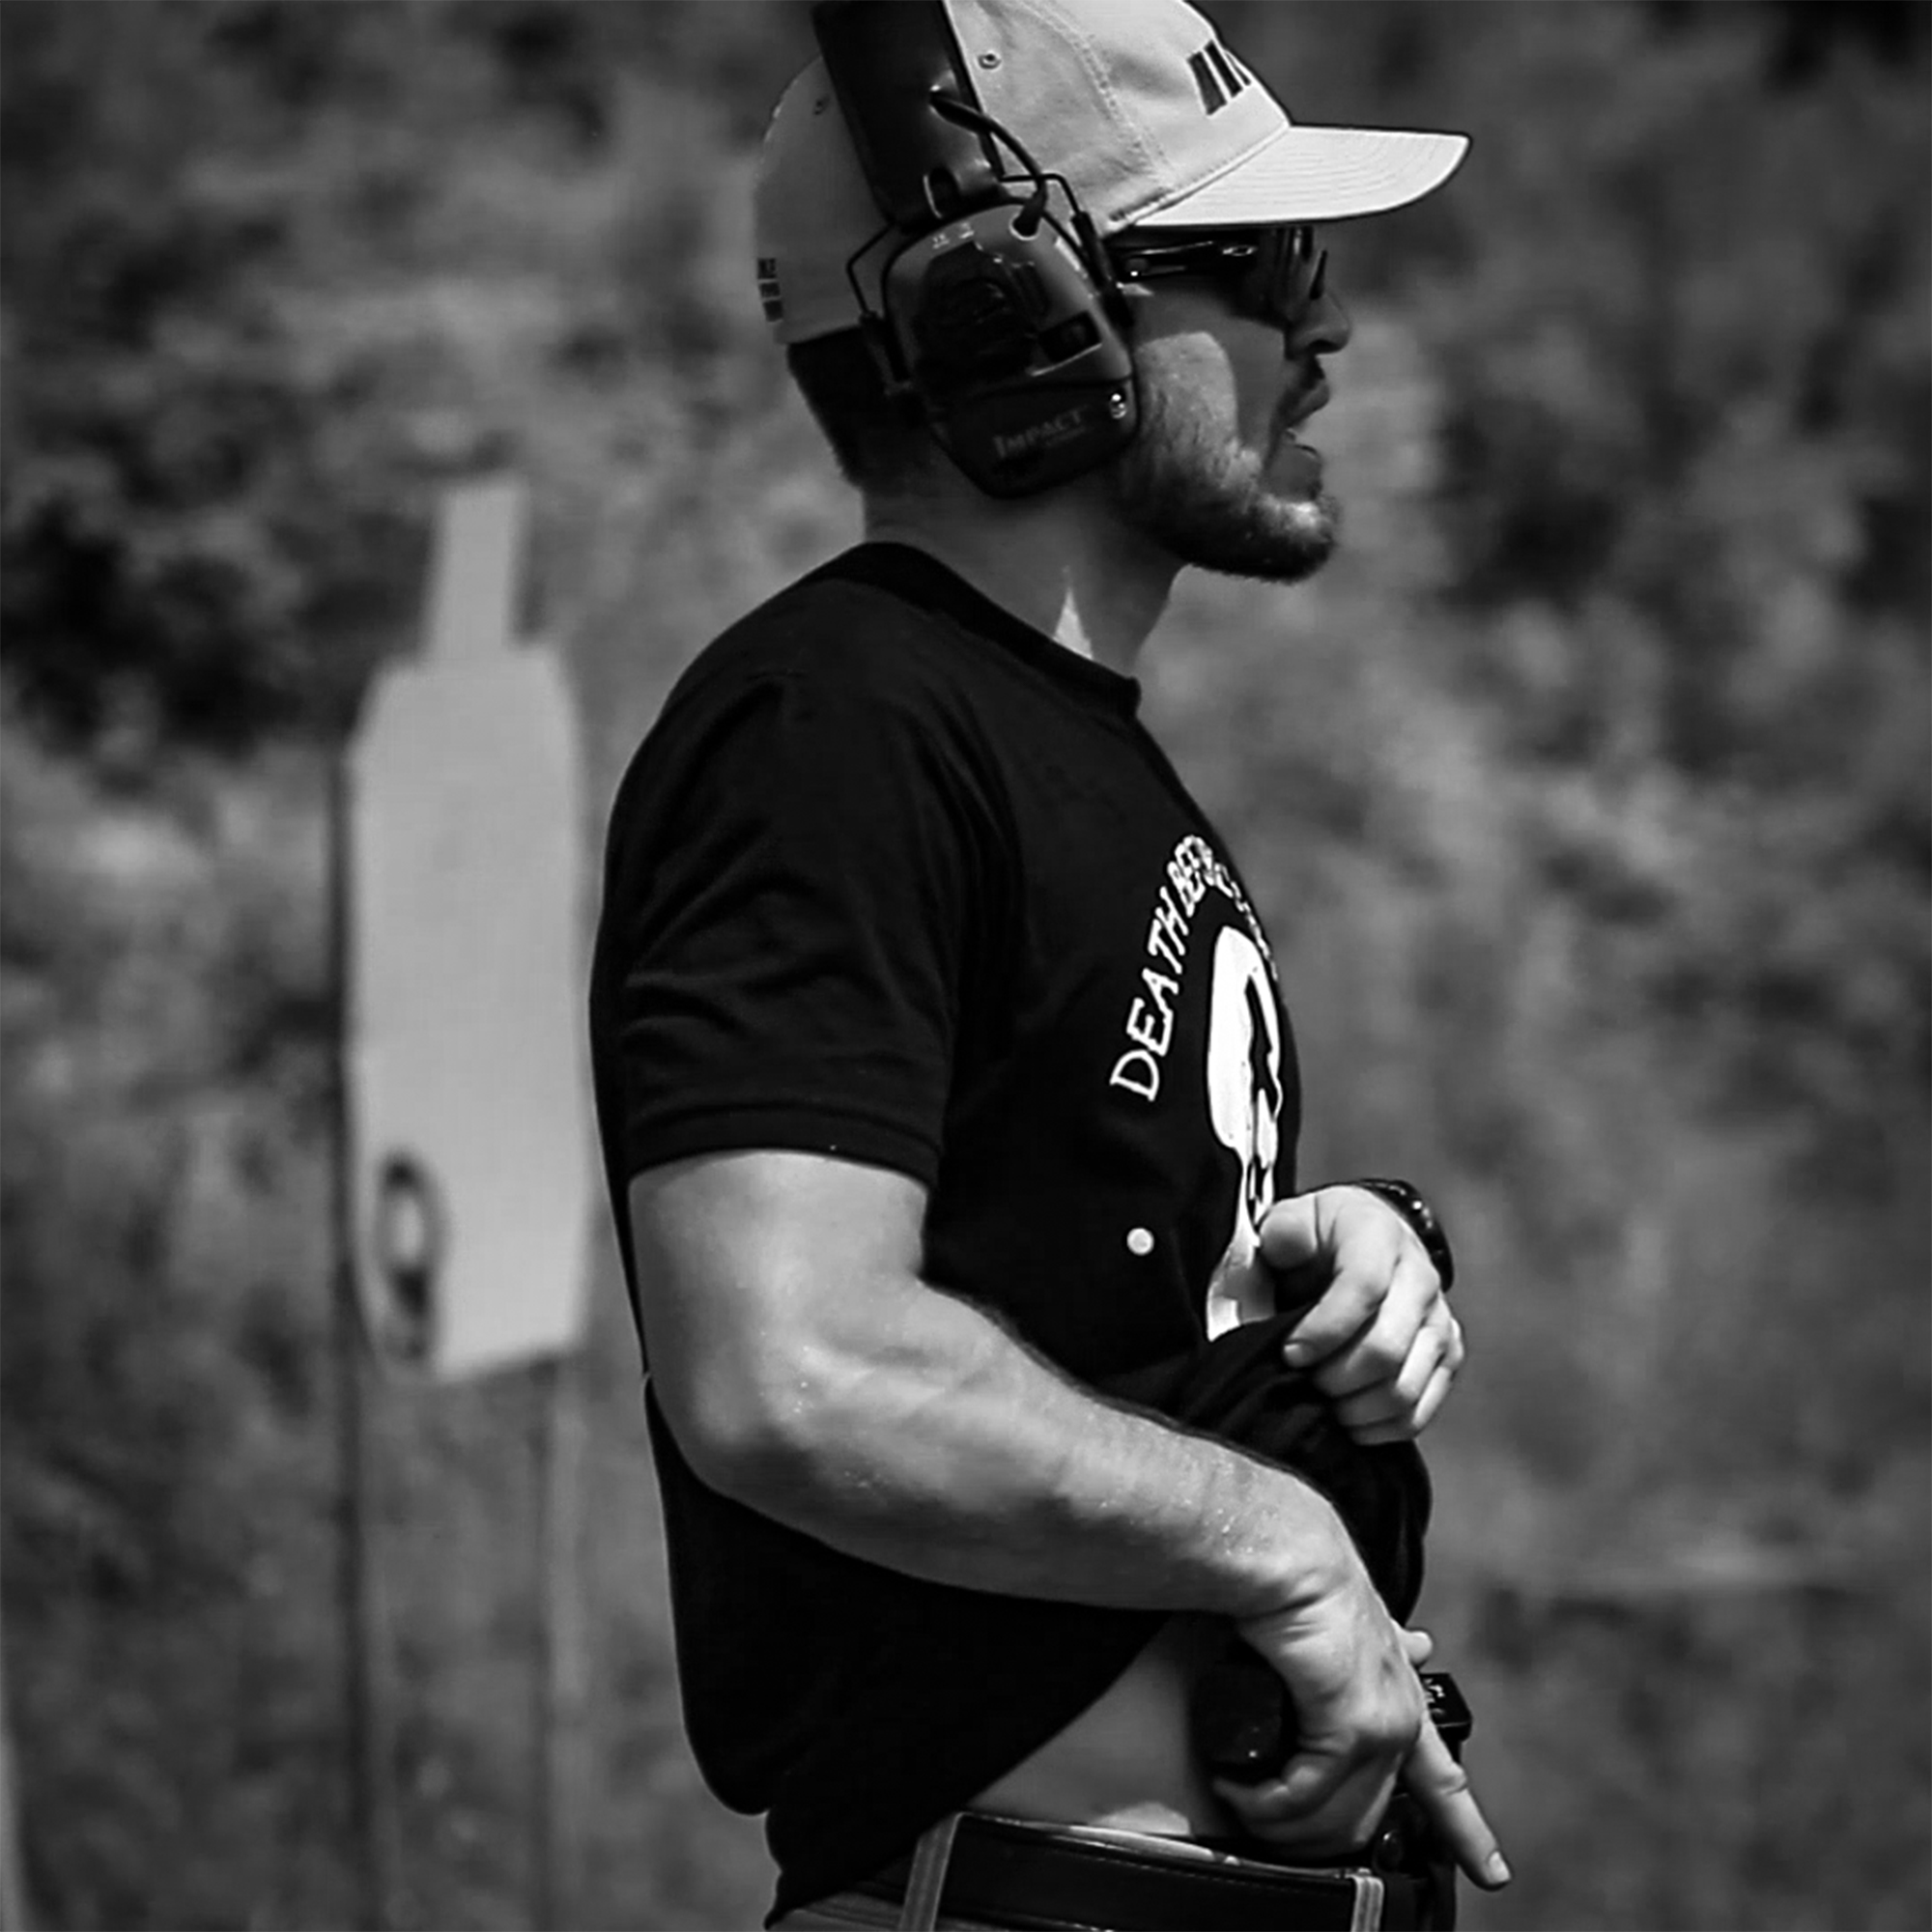 Teaching range safety to concealed carry students at triangle self-defense